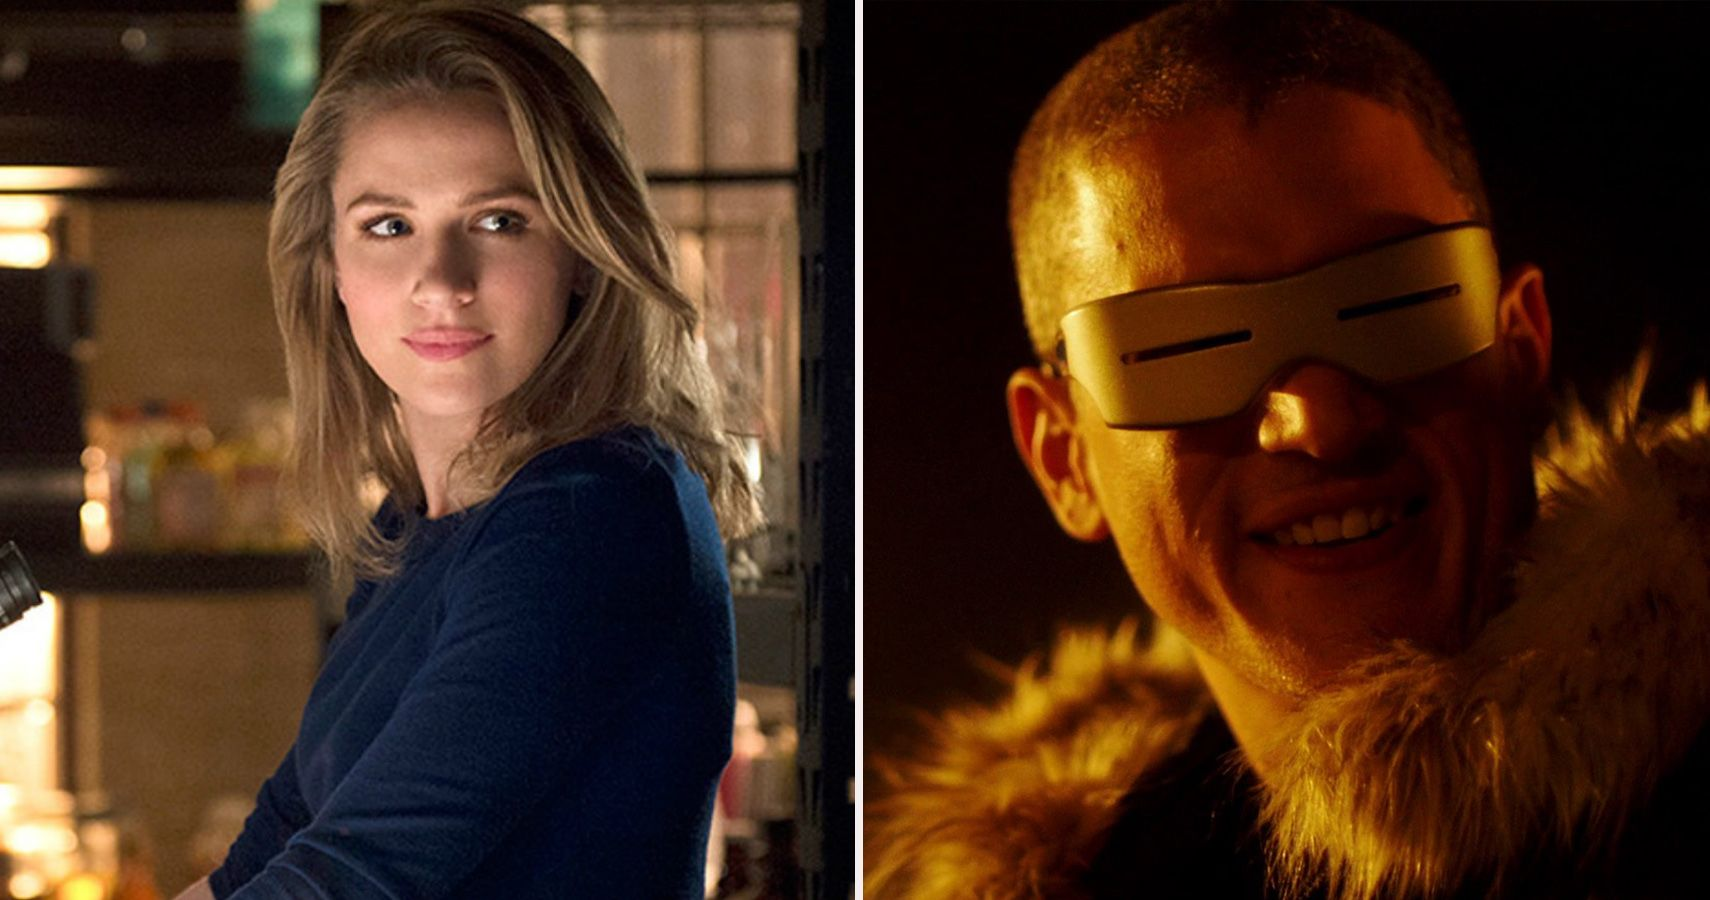 The Flash: 7 Characters Season 6 Must Include (& 3 It Needs To Avoid)